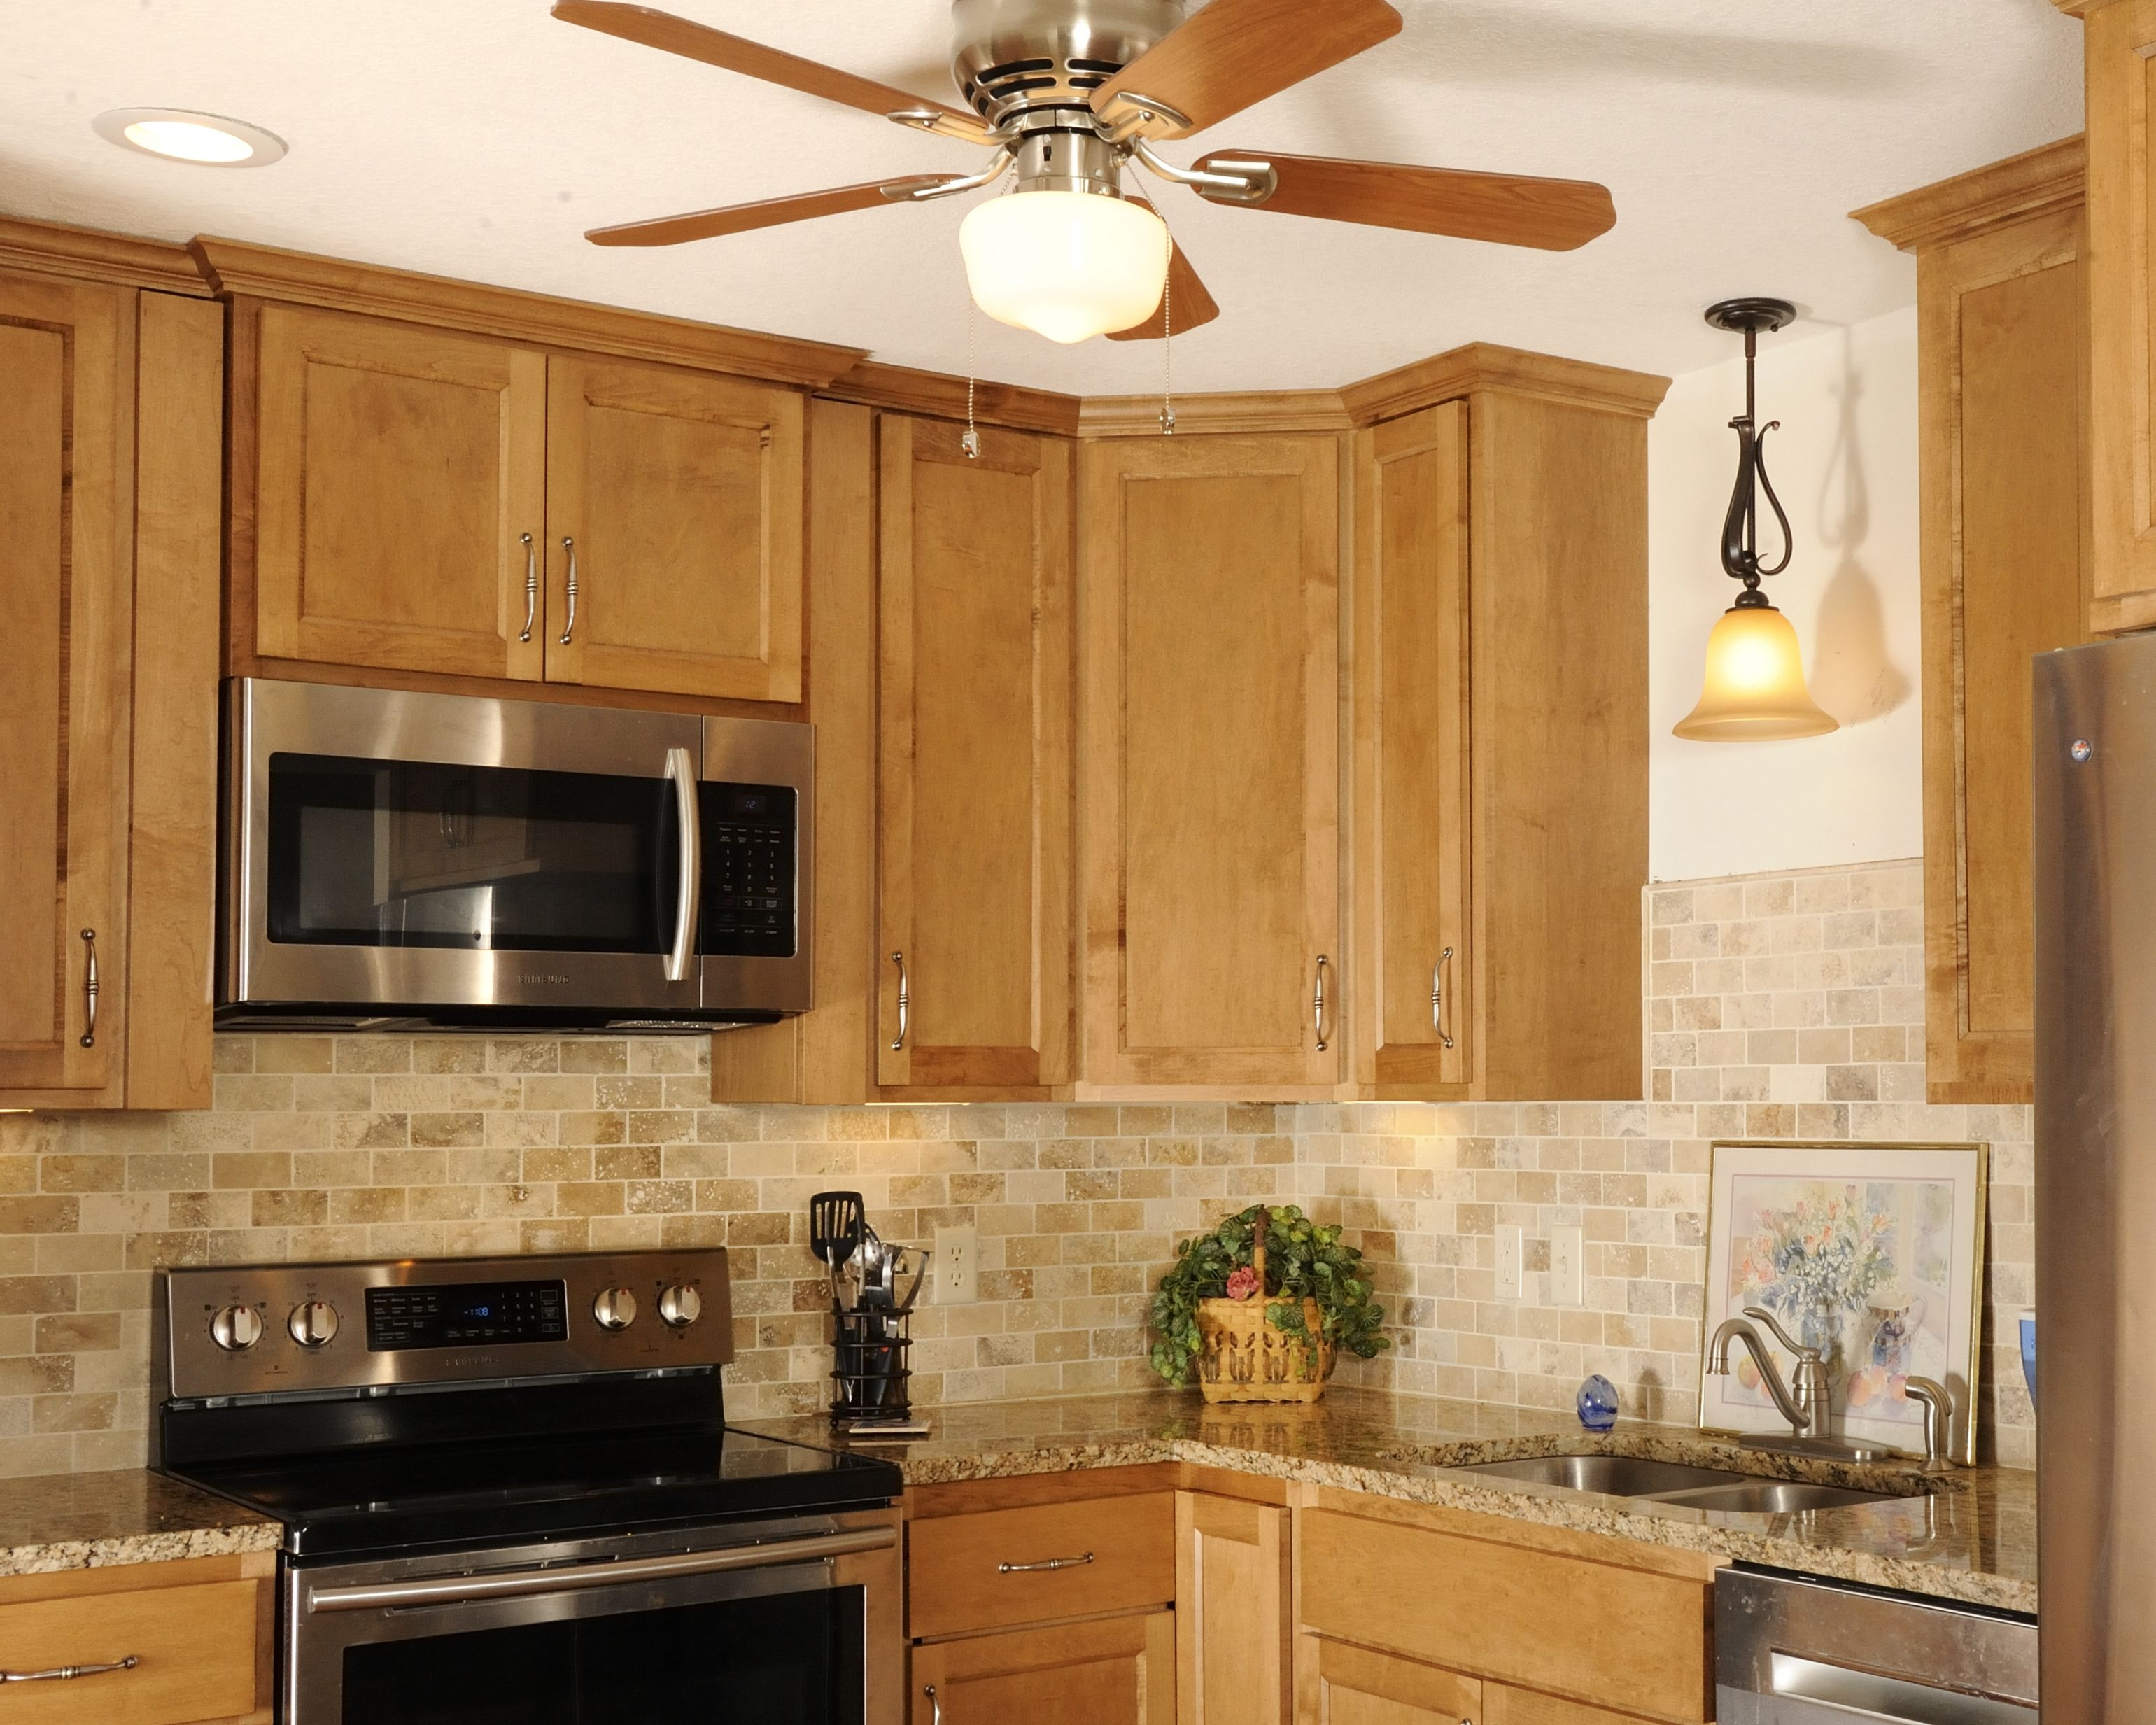 Honey Maple Finish With Natural Granite Counter Top And Travertine Back Splash All In Less Than 120 Sq Ft Maple Kitchen Cabinets Updated Kitchen Maple Kitchen